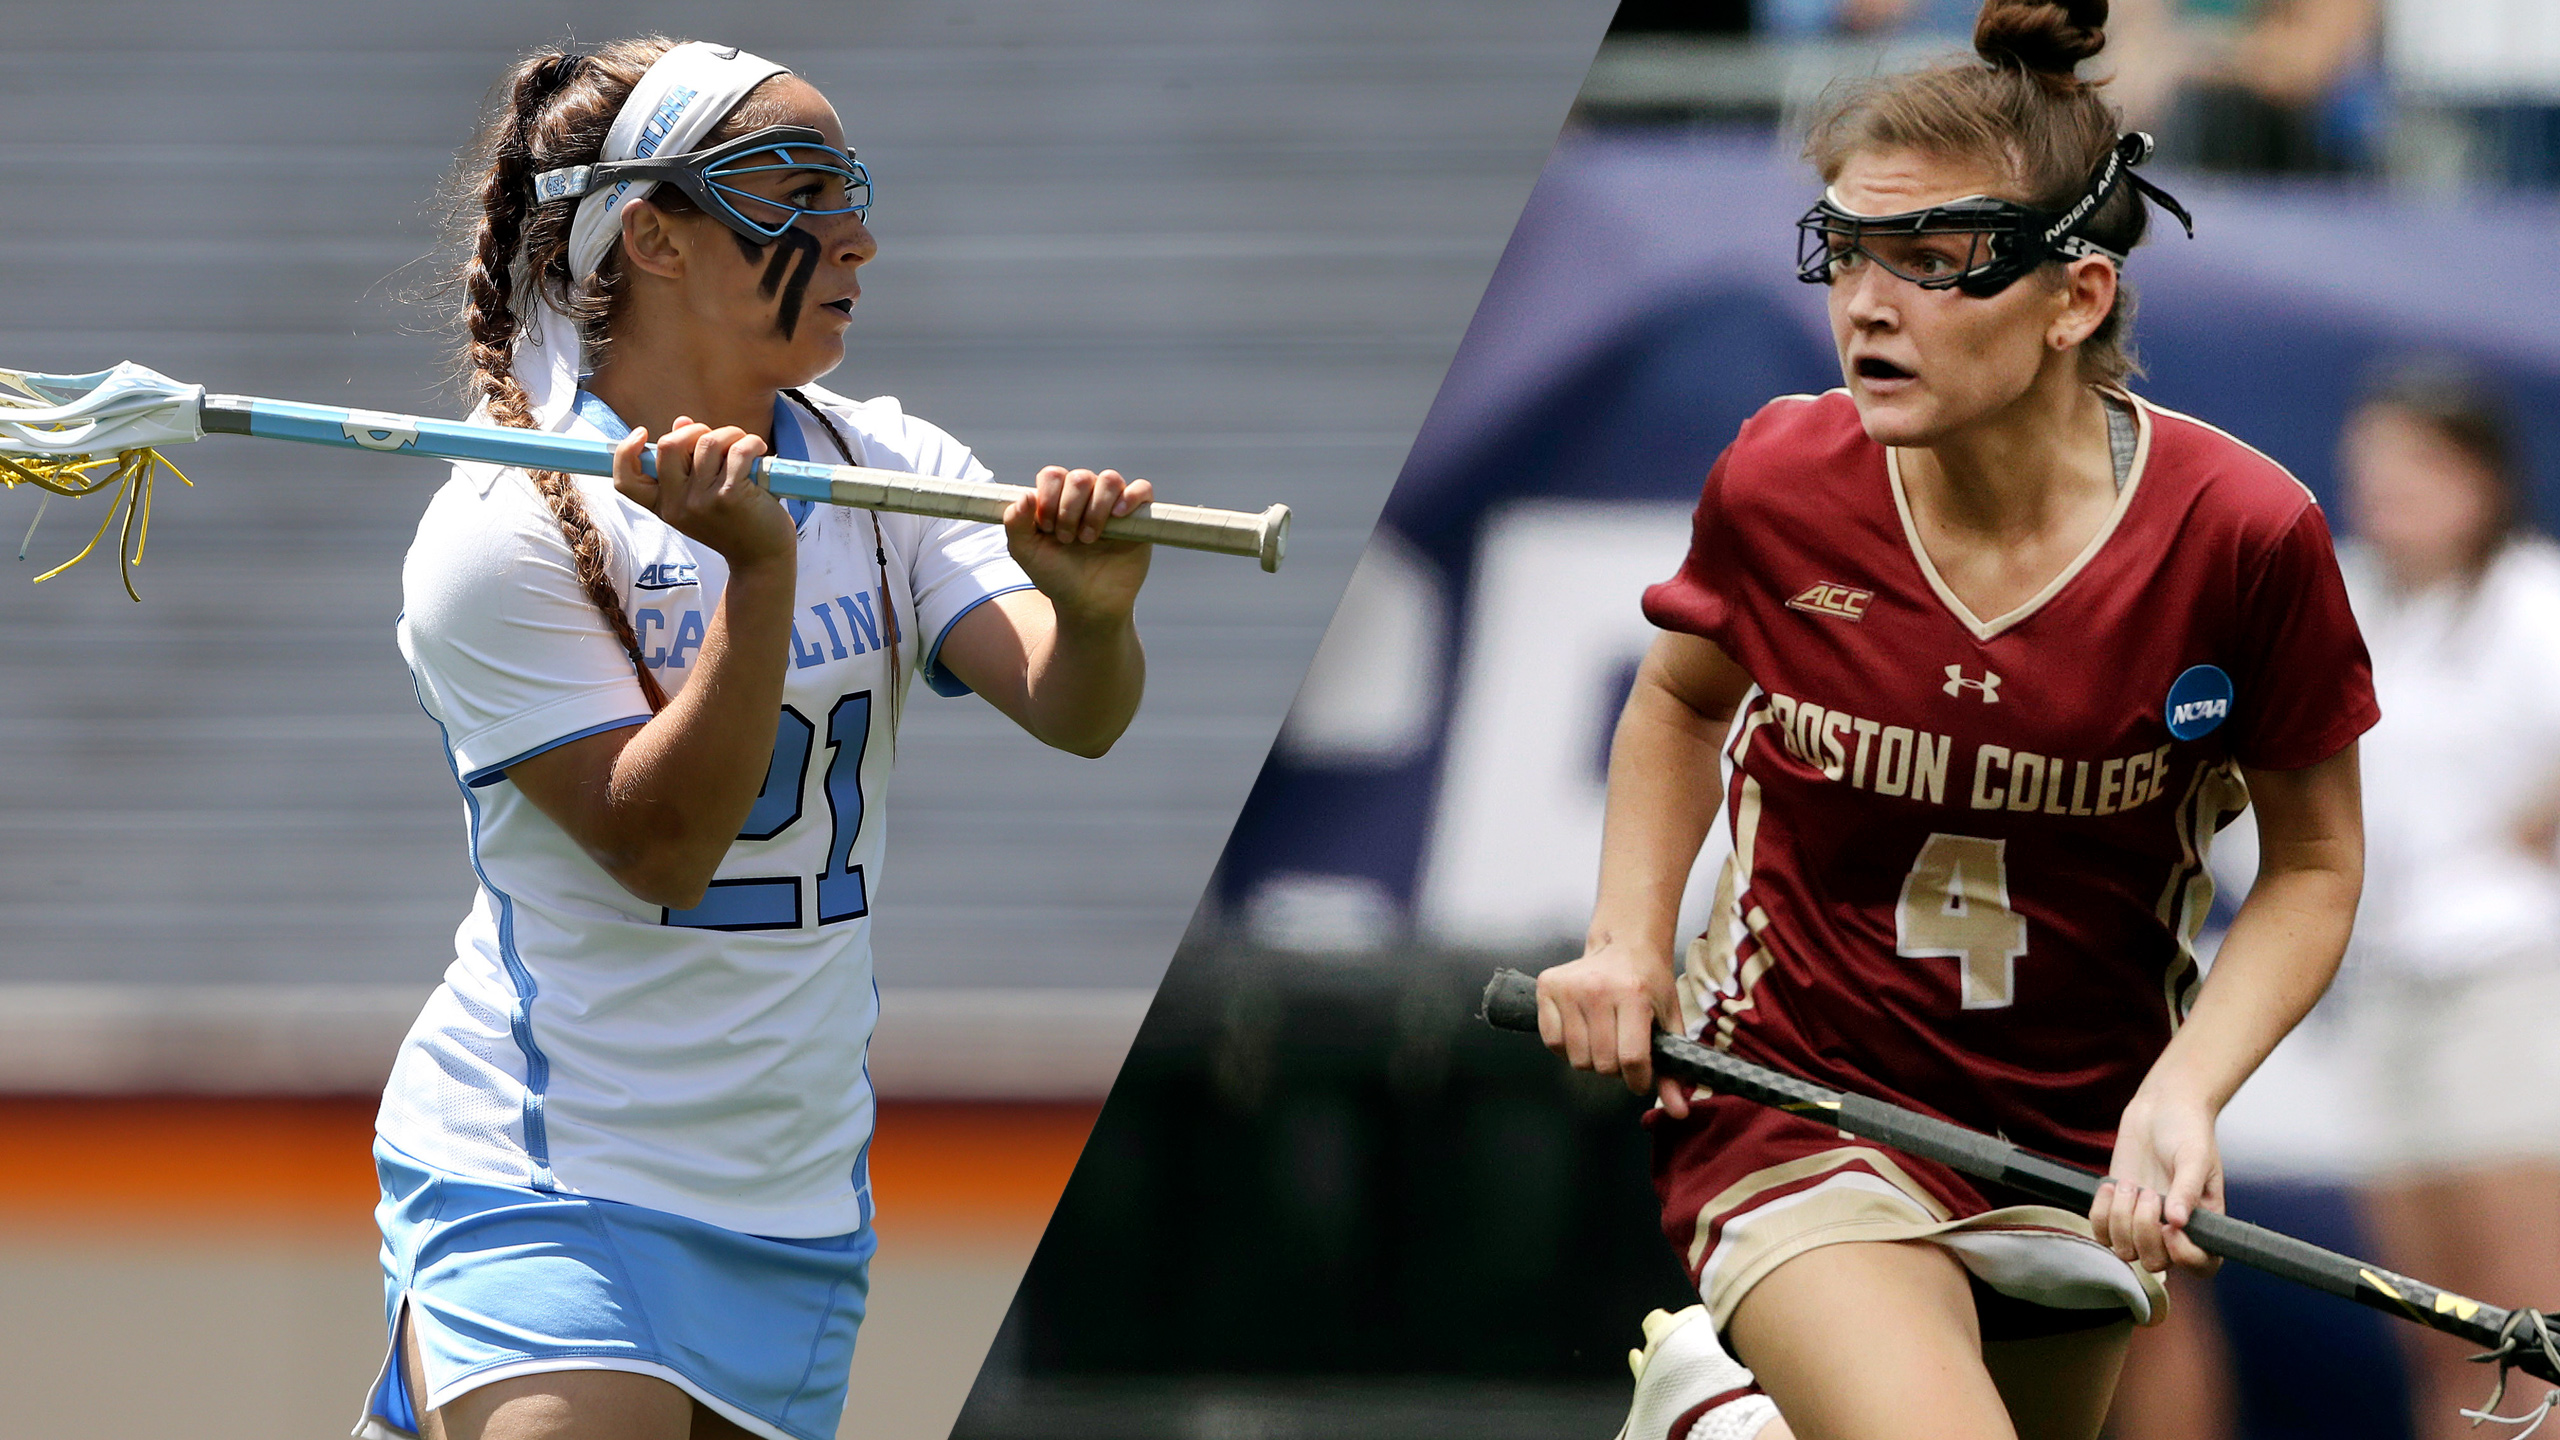 #3 North Carolina vs. #2 Boston College (Semifinal #1)